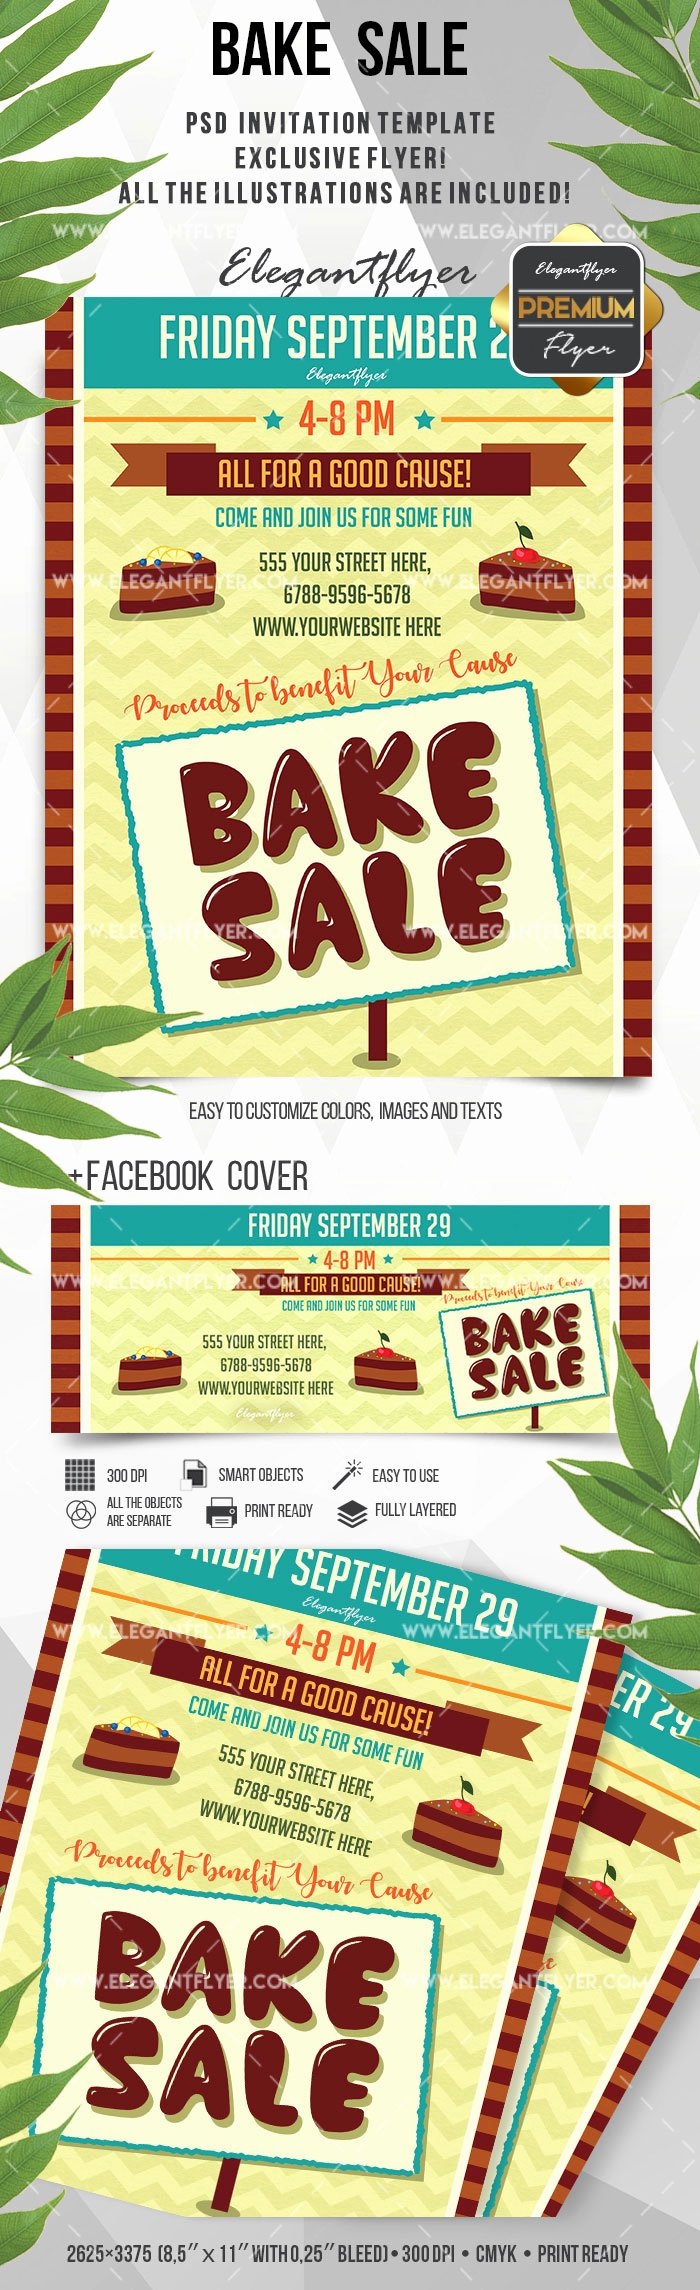 Flyer for Bake Sale Bakery – by Elegantflyer